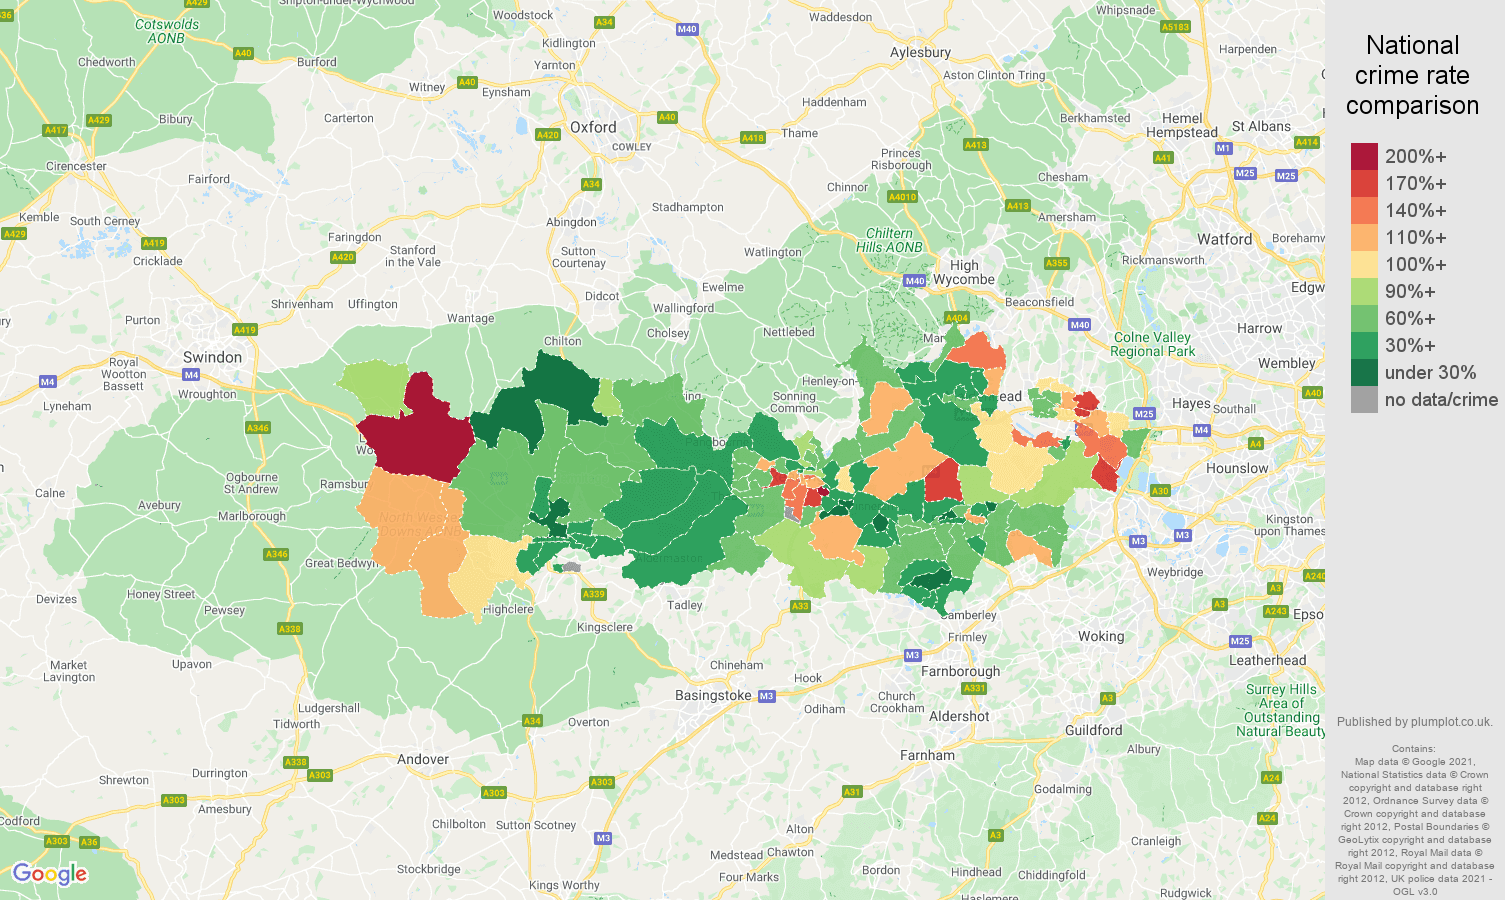 Berkshire burglary crime rate comparison map